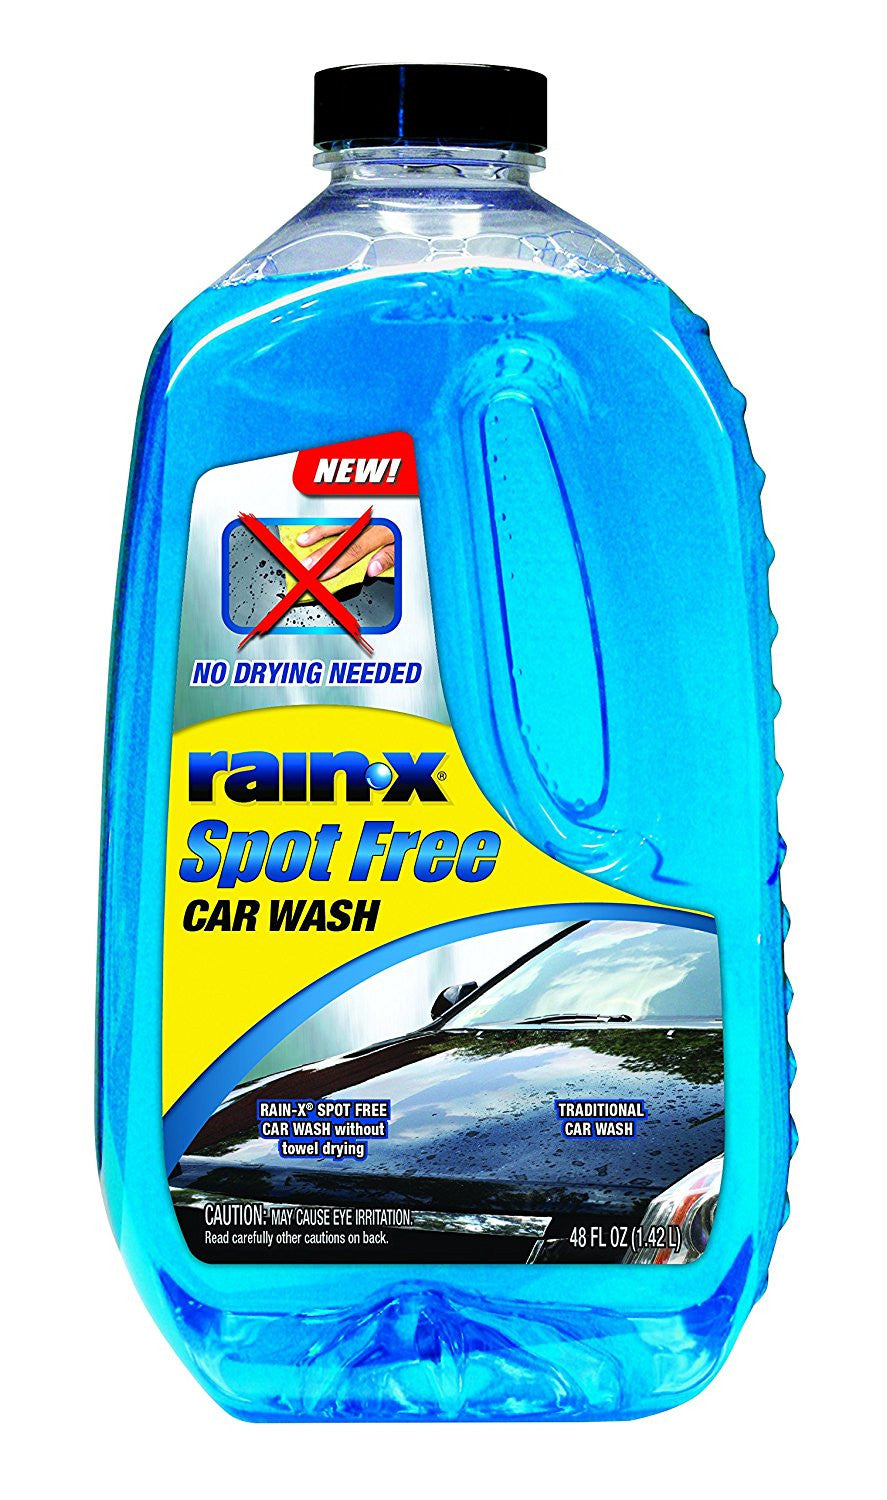 Rainx Spot Free Car Wash (1.42 L)